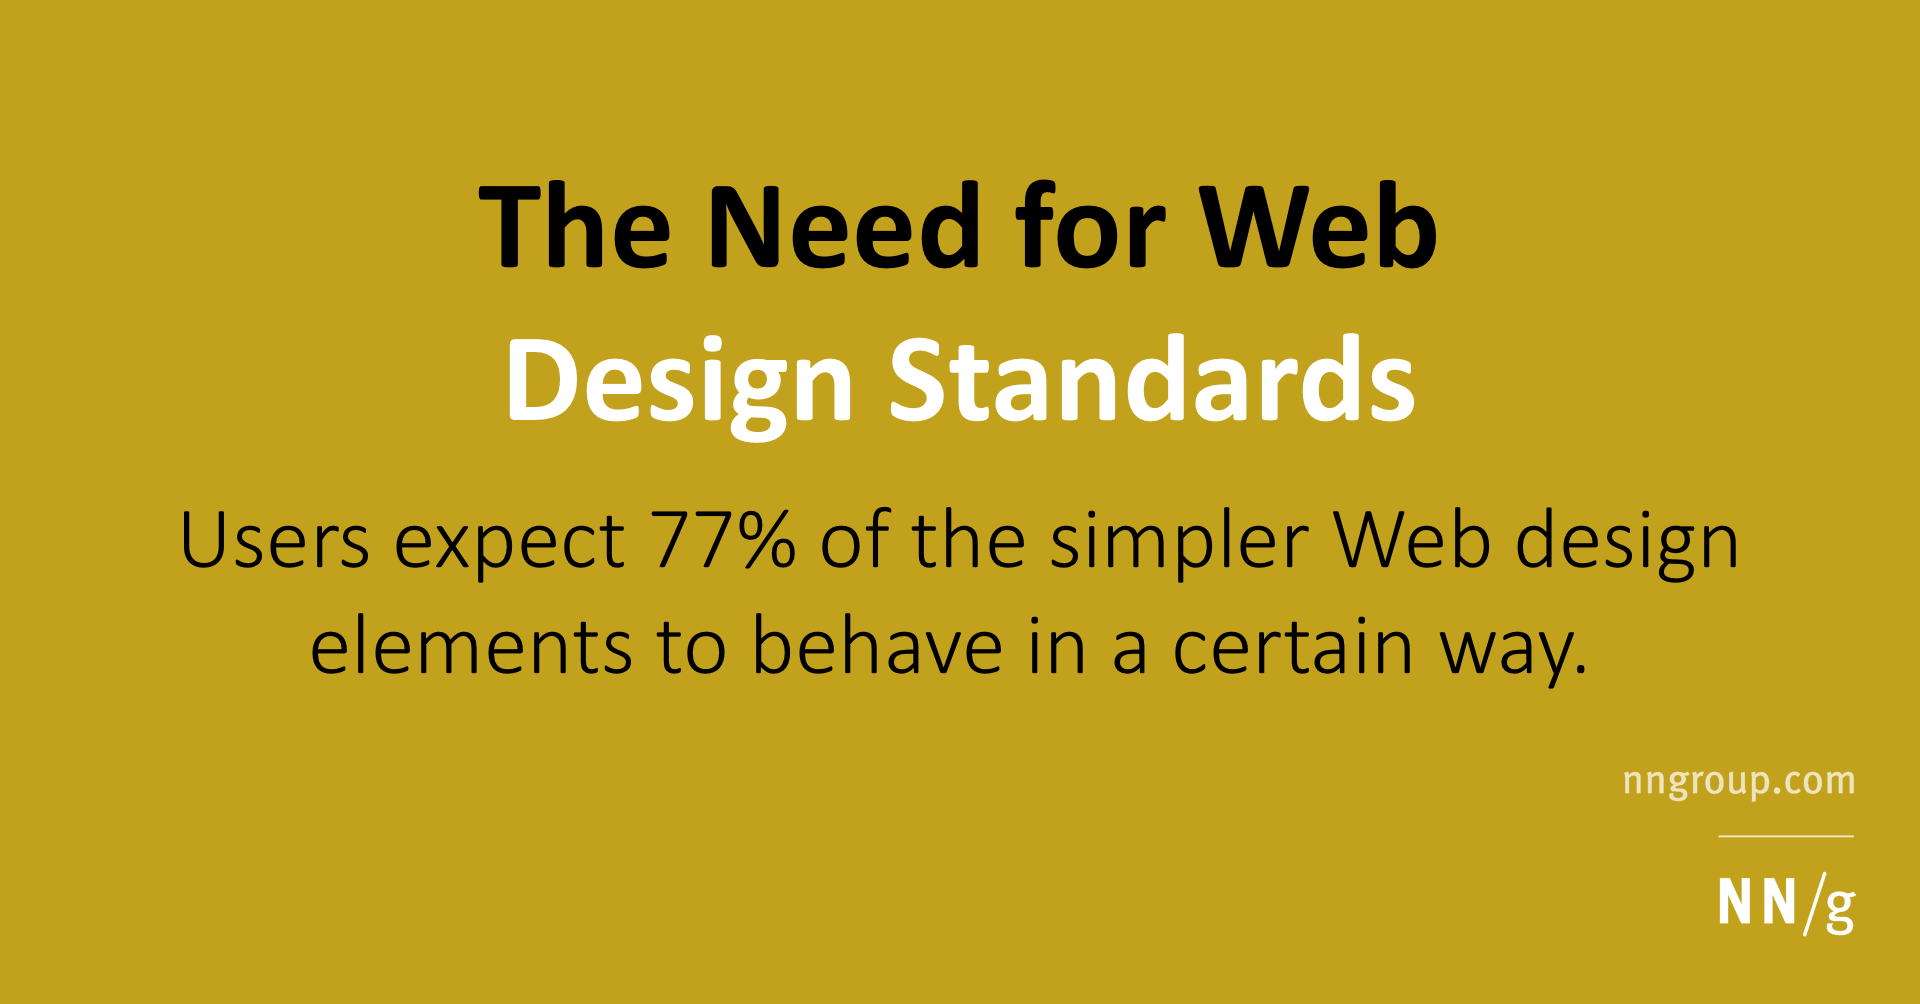 The Need for Web Design Standards